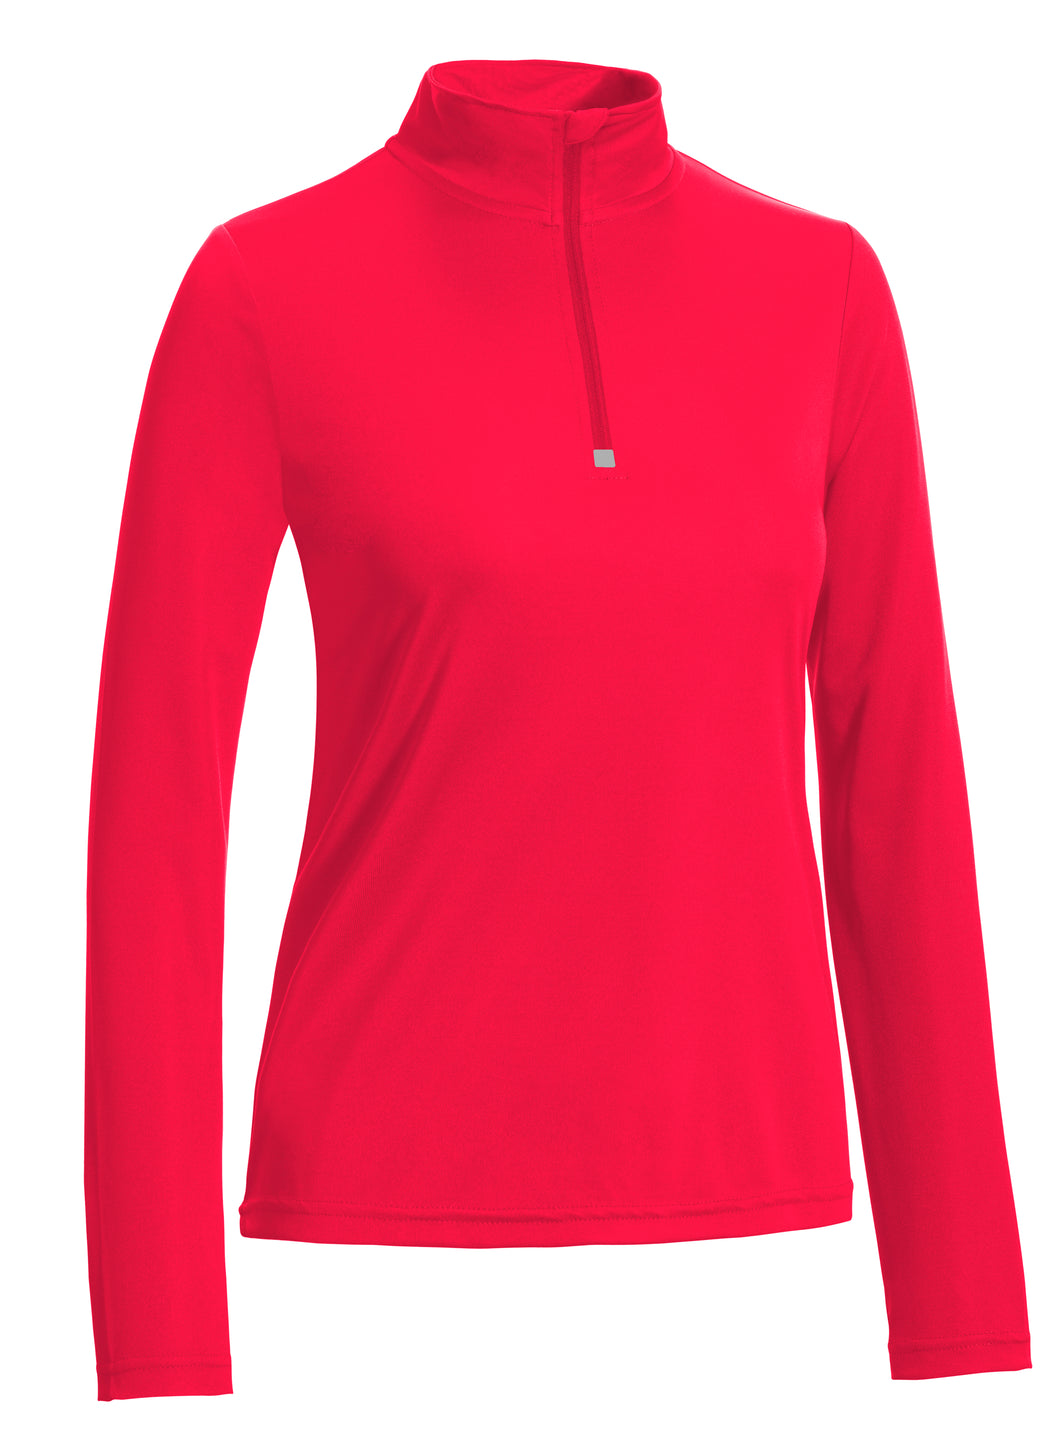 Ladies Quarter-zip Performance Pullover - Loriet Activewear